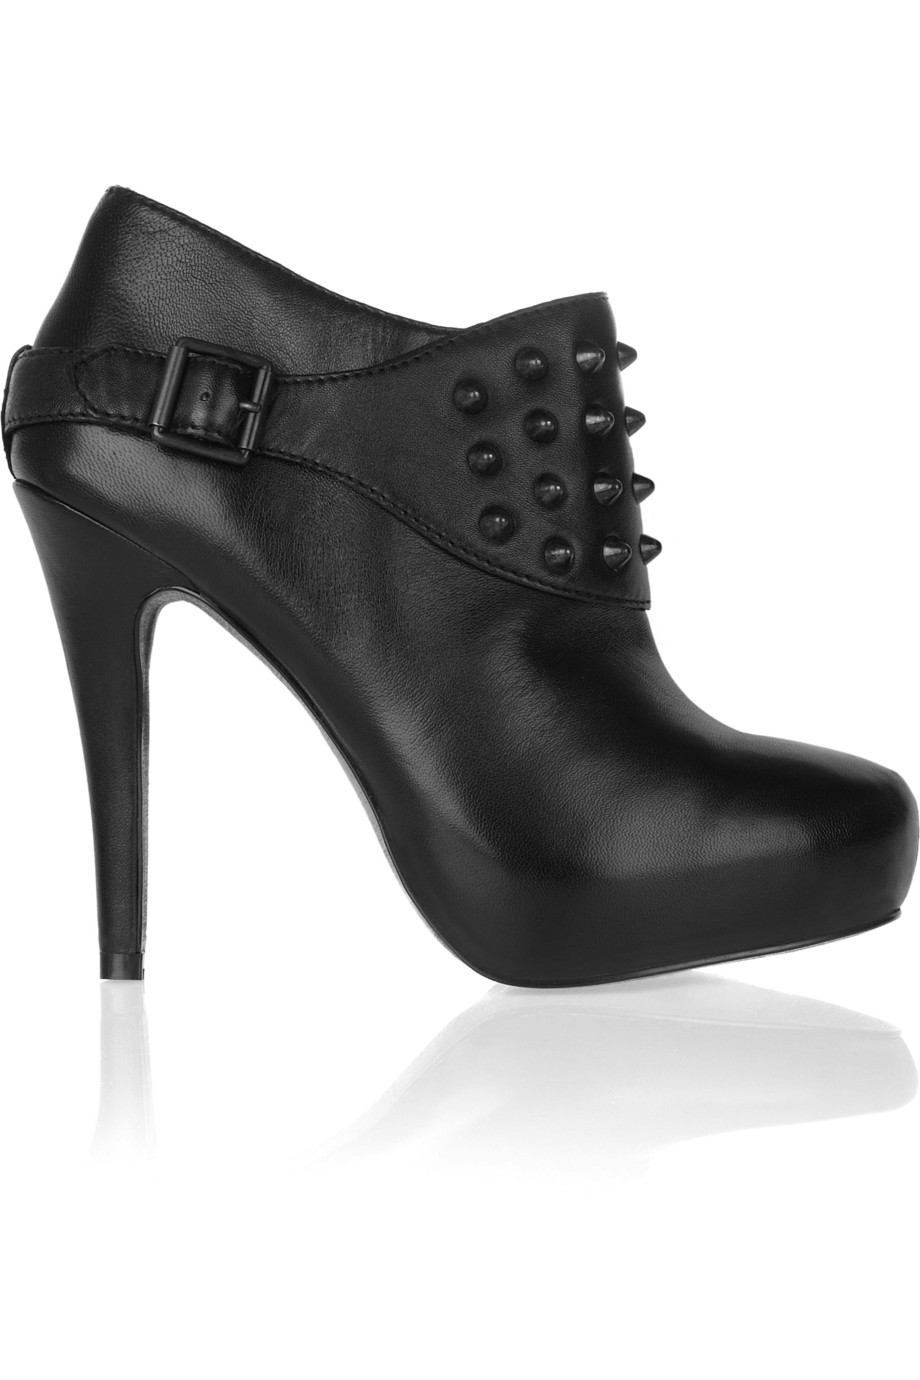 Ash Emma Studded Leather Ankle Boots in Black